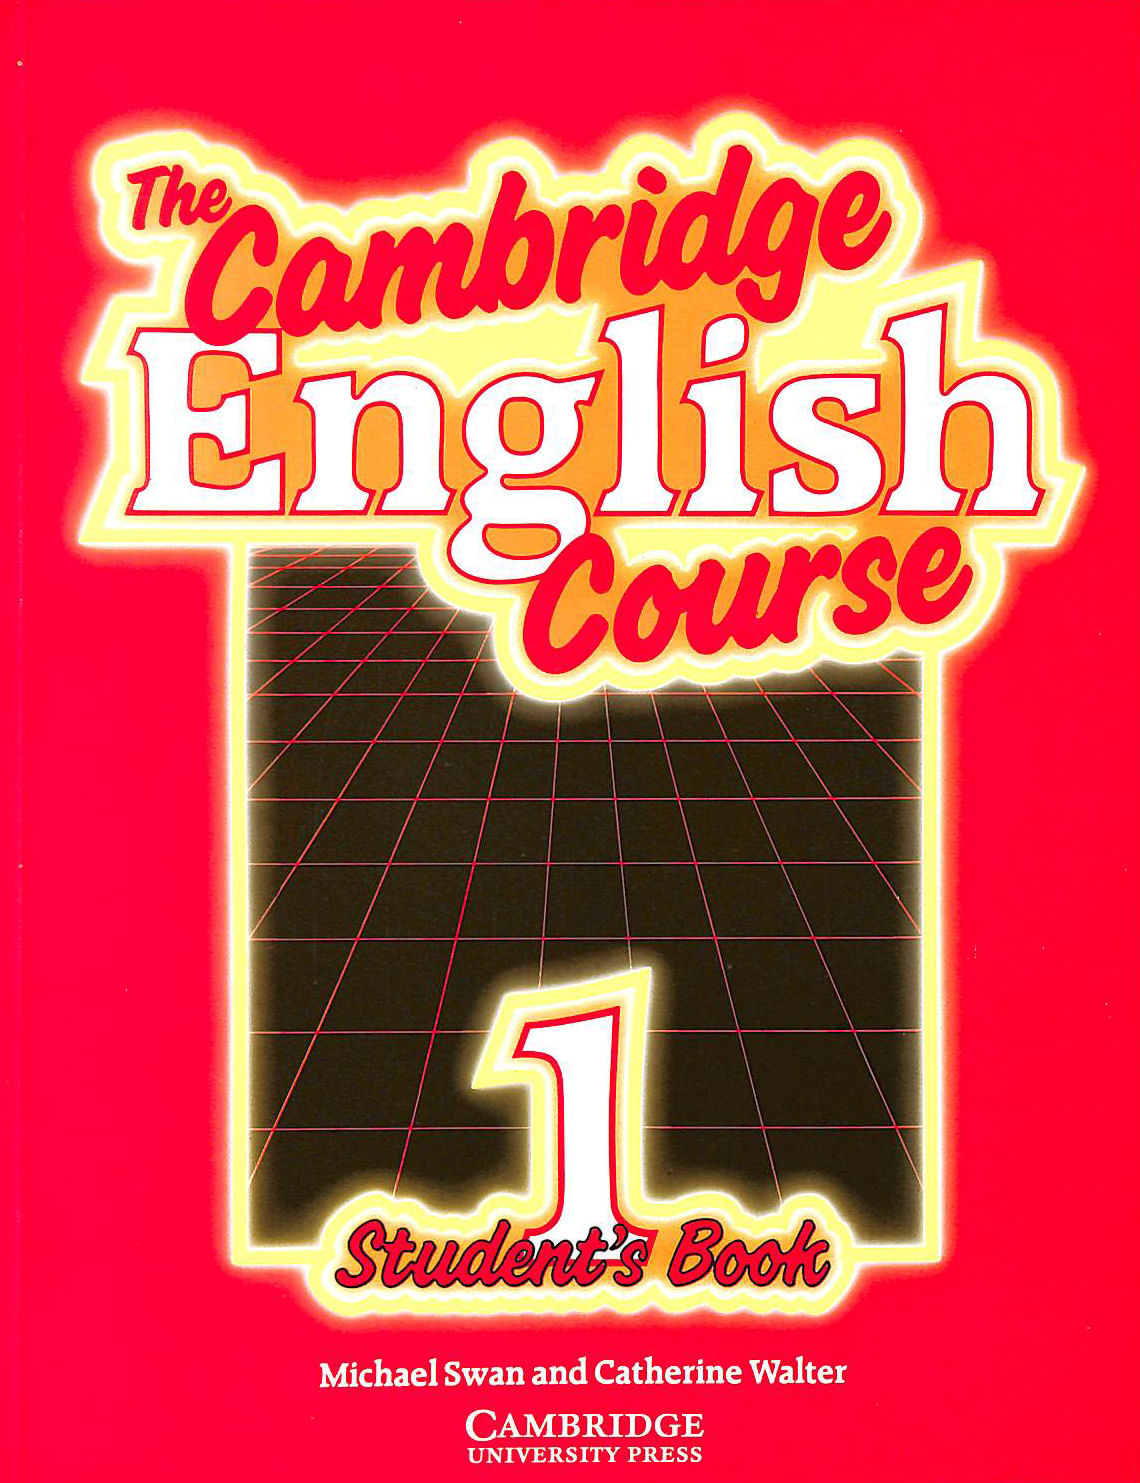 Image for The Cambridge English Course 1 Student's book